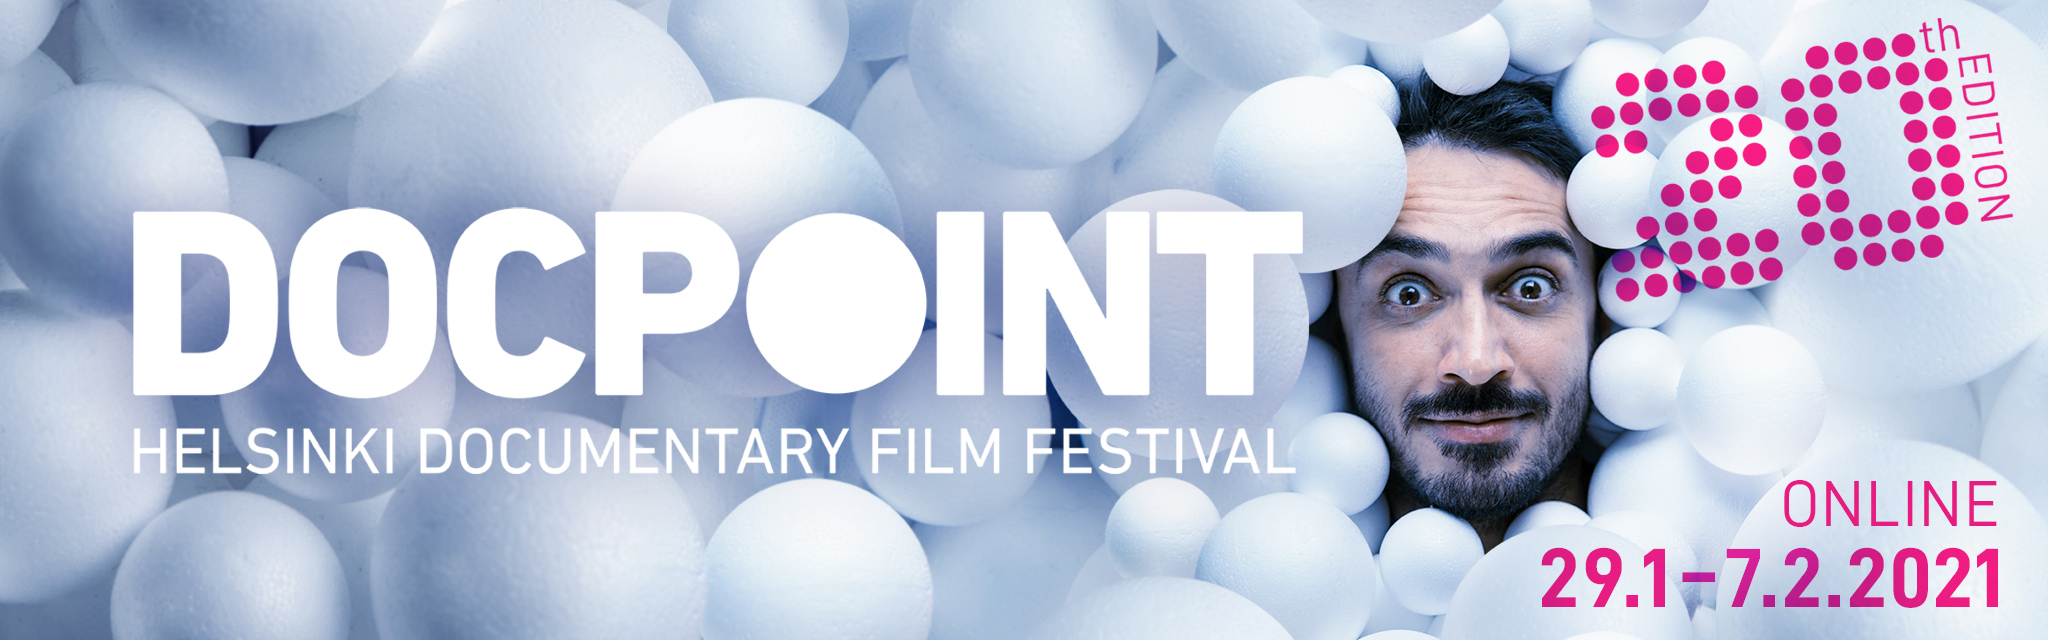 docpoint-2021-main-banner online